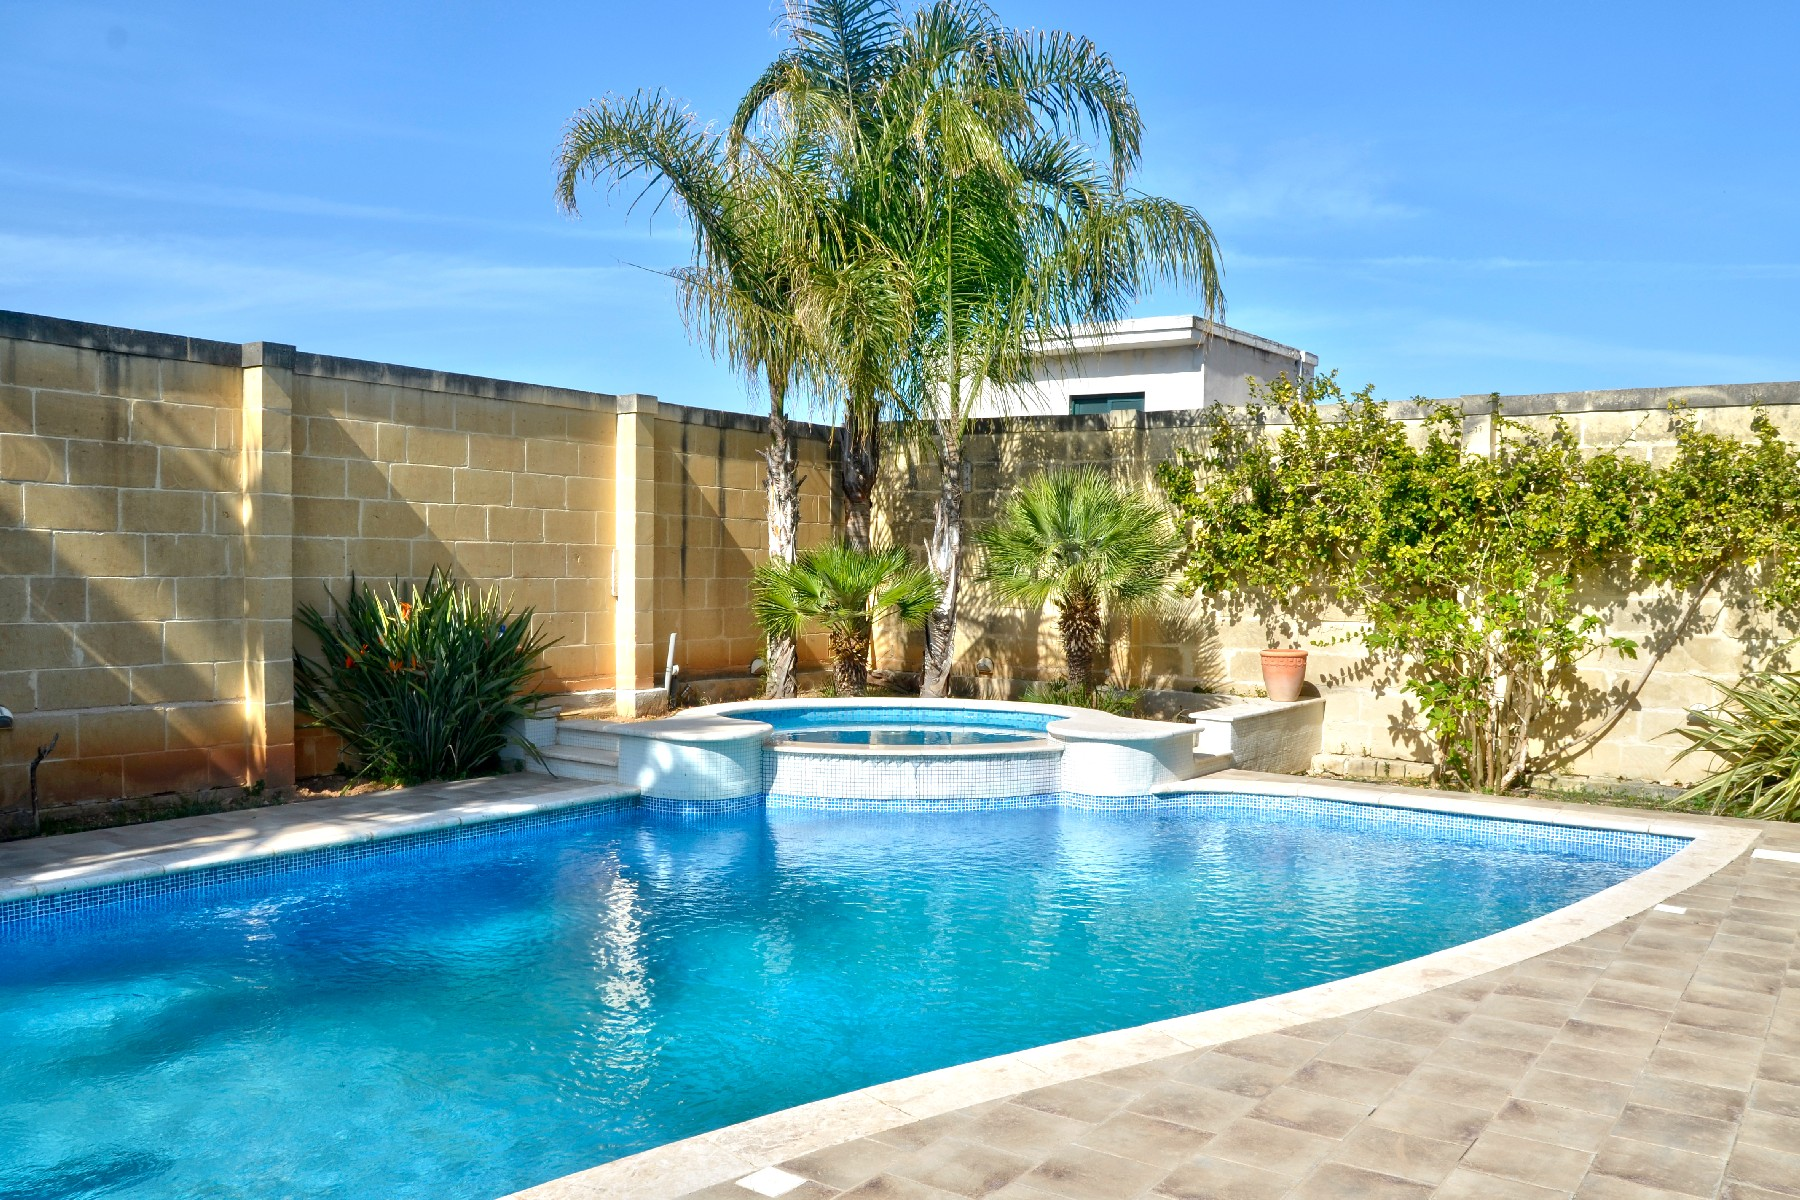 Other Residential for Sale at Semi Detached Villa Balzan Balzan, Malta Malta